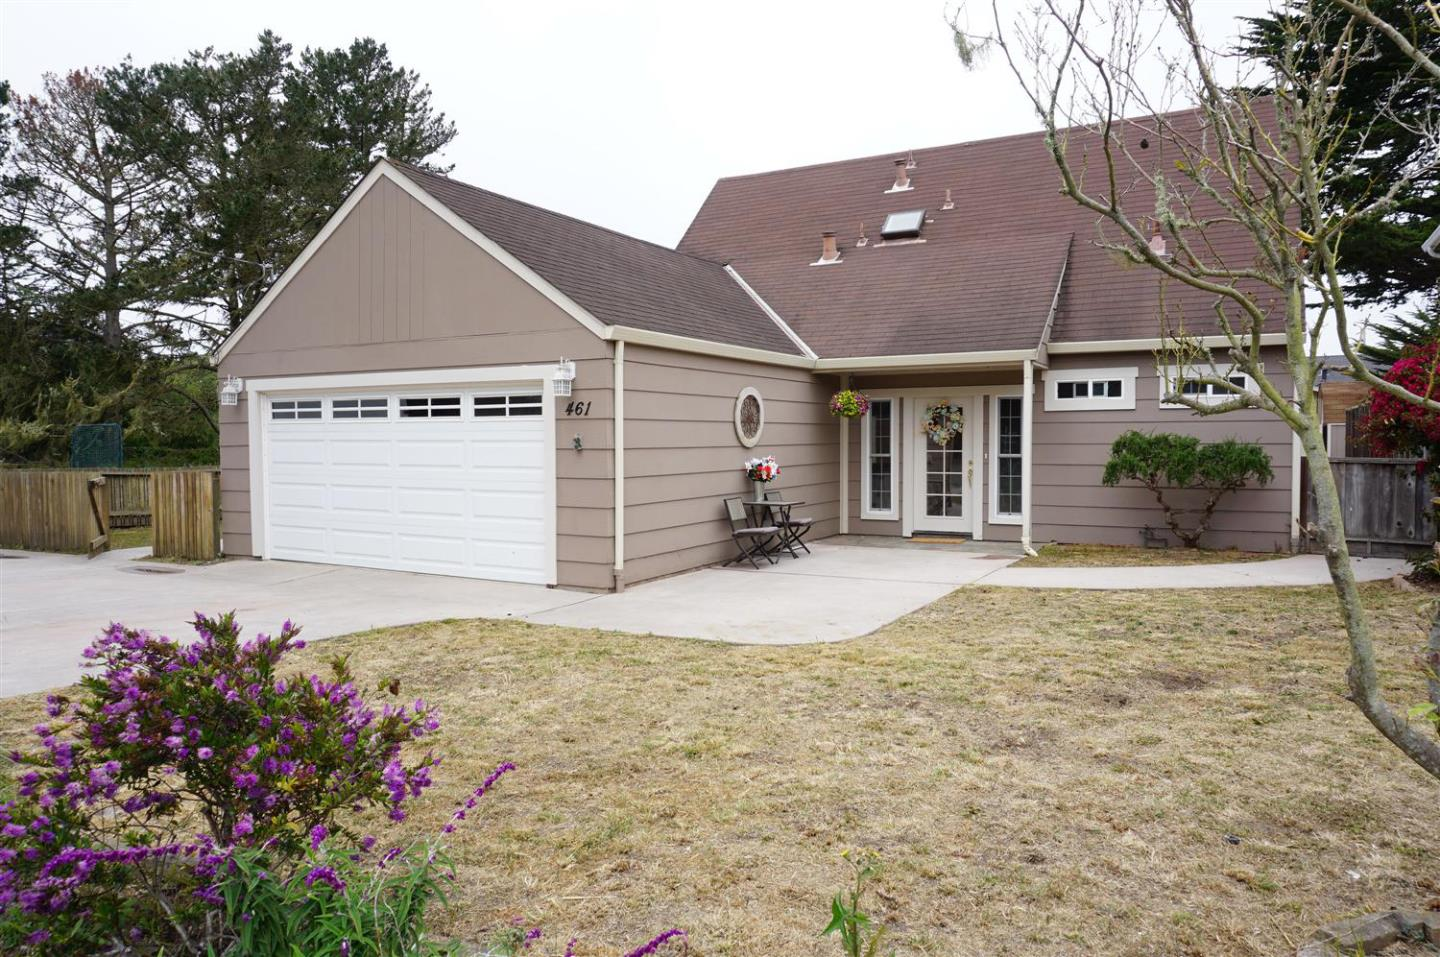 This 3BR, 2.5BA home is built on a double lot and is nestled in the west side of Moss Beach. With 2,120 SF of living space, this home is ideal for entertaining and has a huge bonus room that has access to the sprawling yard. It has tons of light and hardwood floors throughout as well as a large kitchen perfect for the family chef. Store your car and beach toys in the two-car garage and enjoy its close proximity to the beach.  Included in the sale is neighboring lot APN 037-181-290, which offers expansion opportunities.